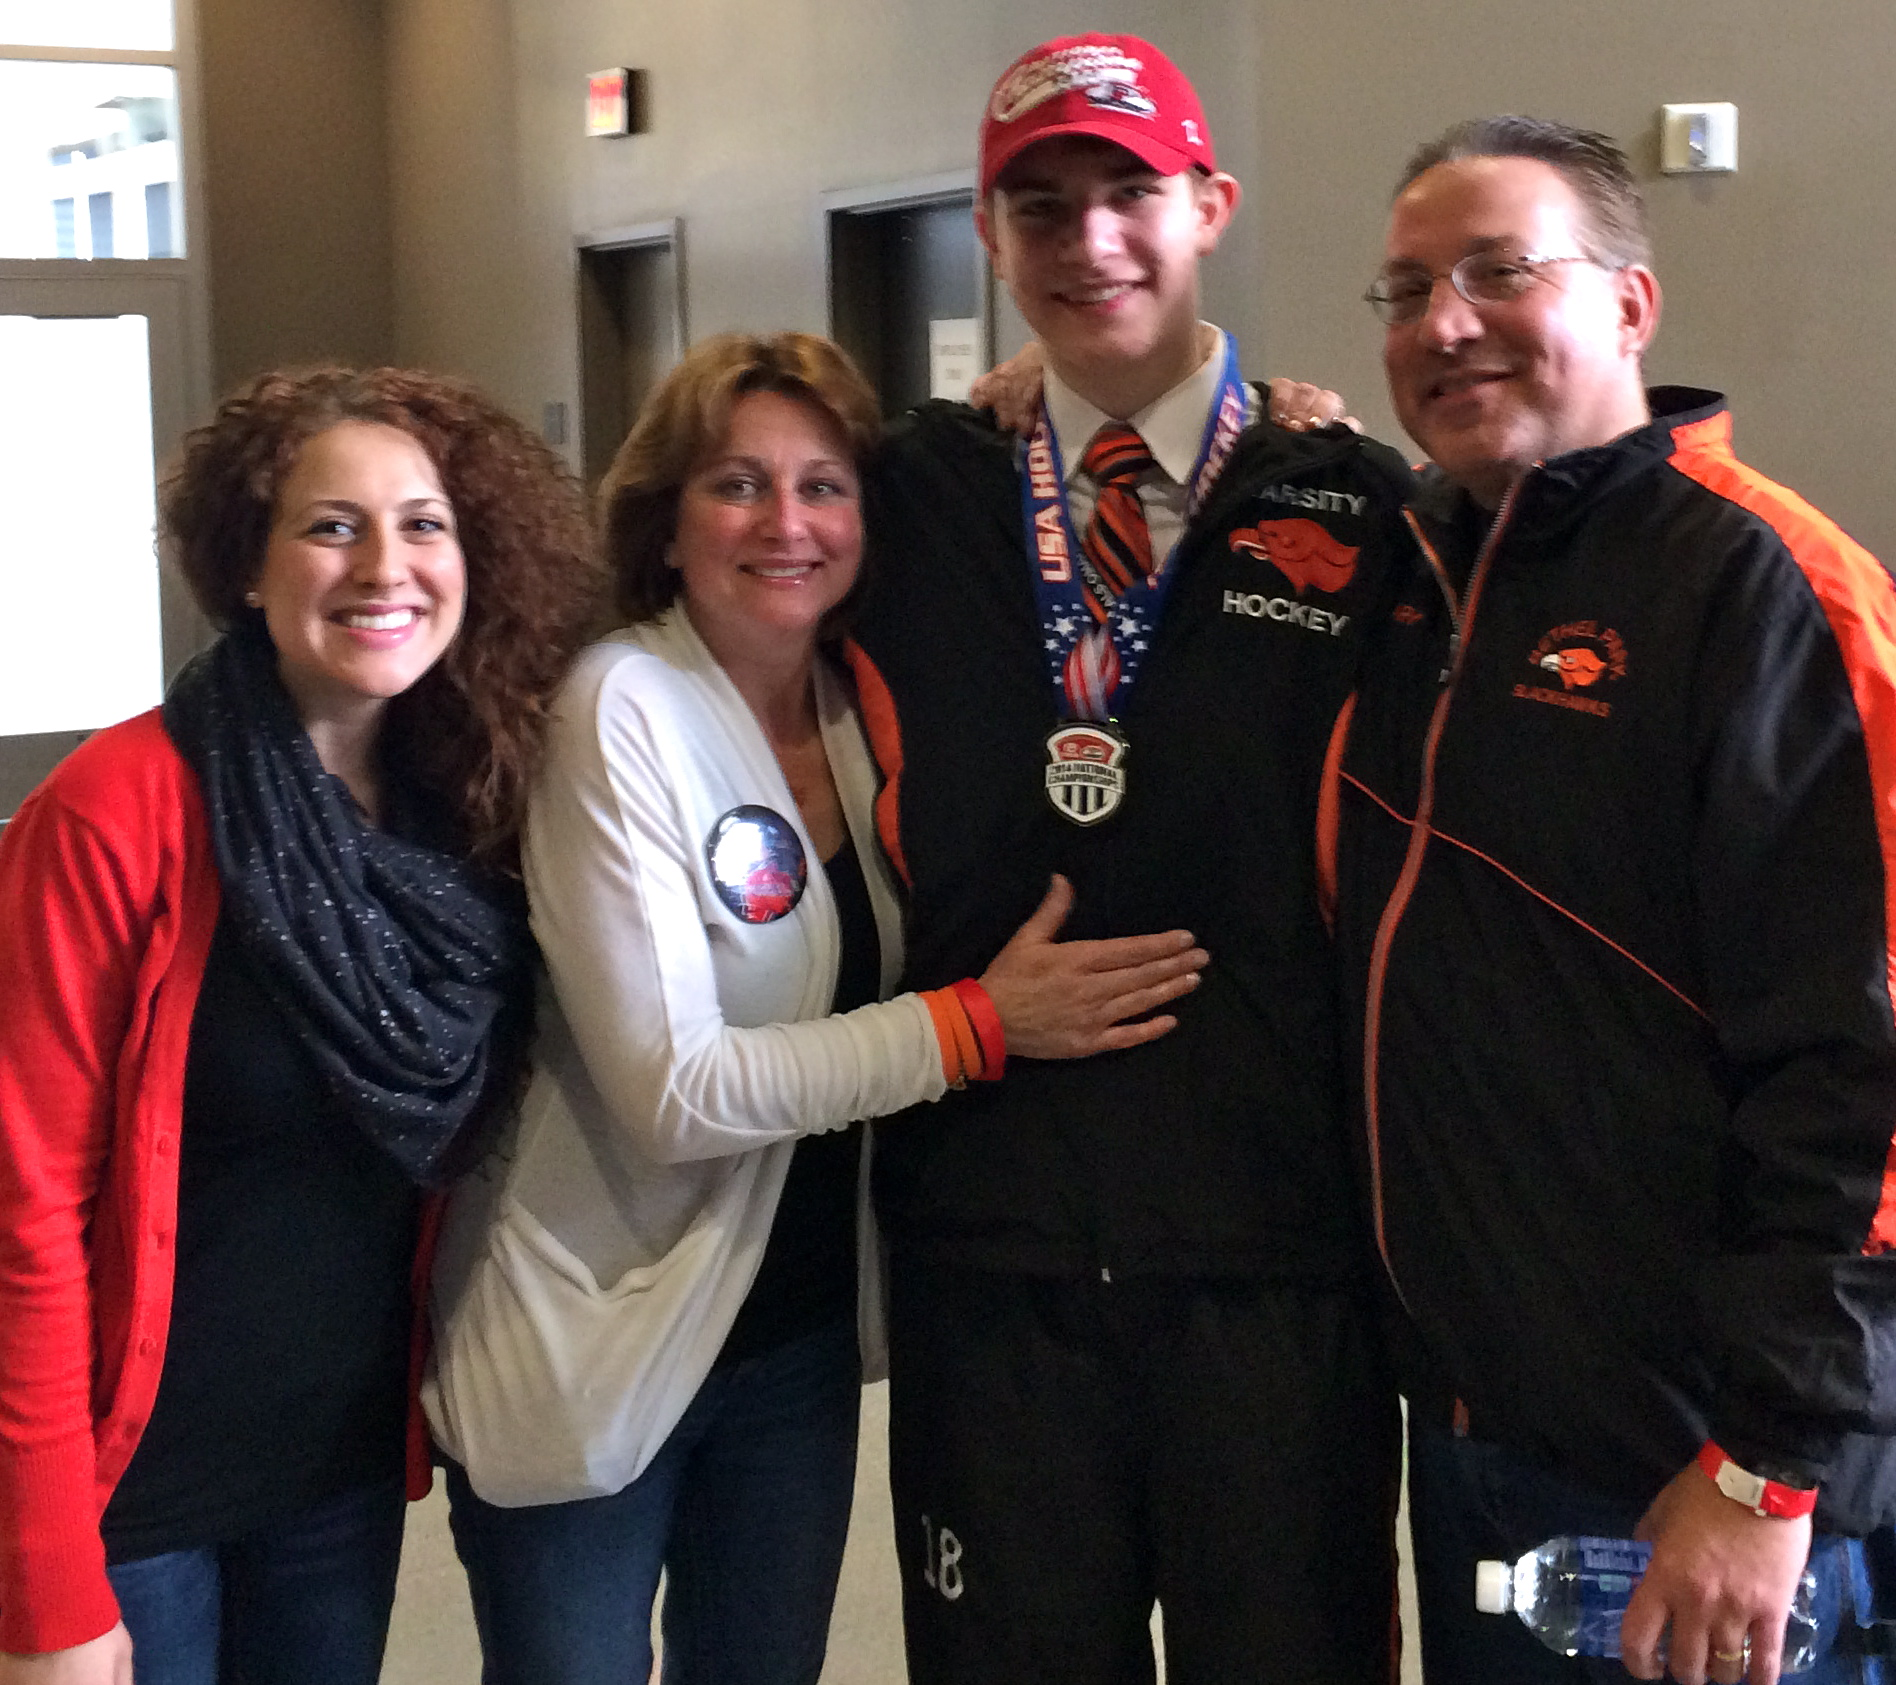 USA Hockey National Championships: A Win For Everyone!